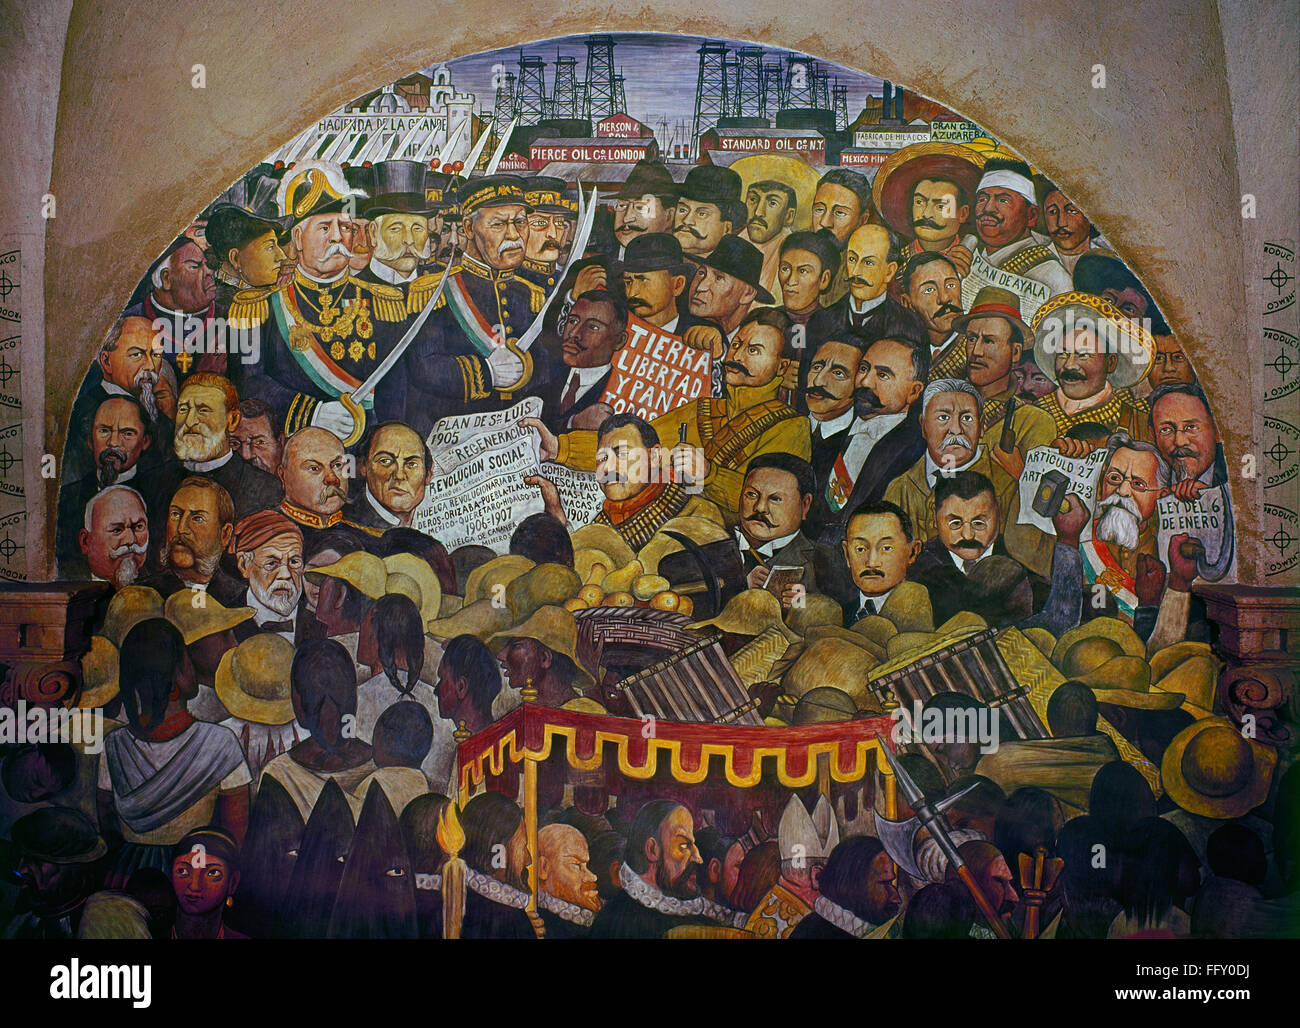 Diego rivera mural 1929 diego rivera the history of for Diego rivera mural 1929